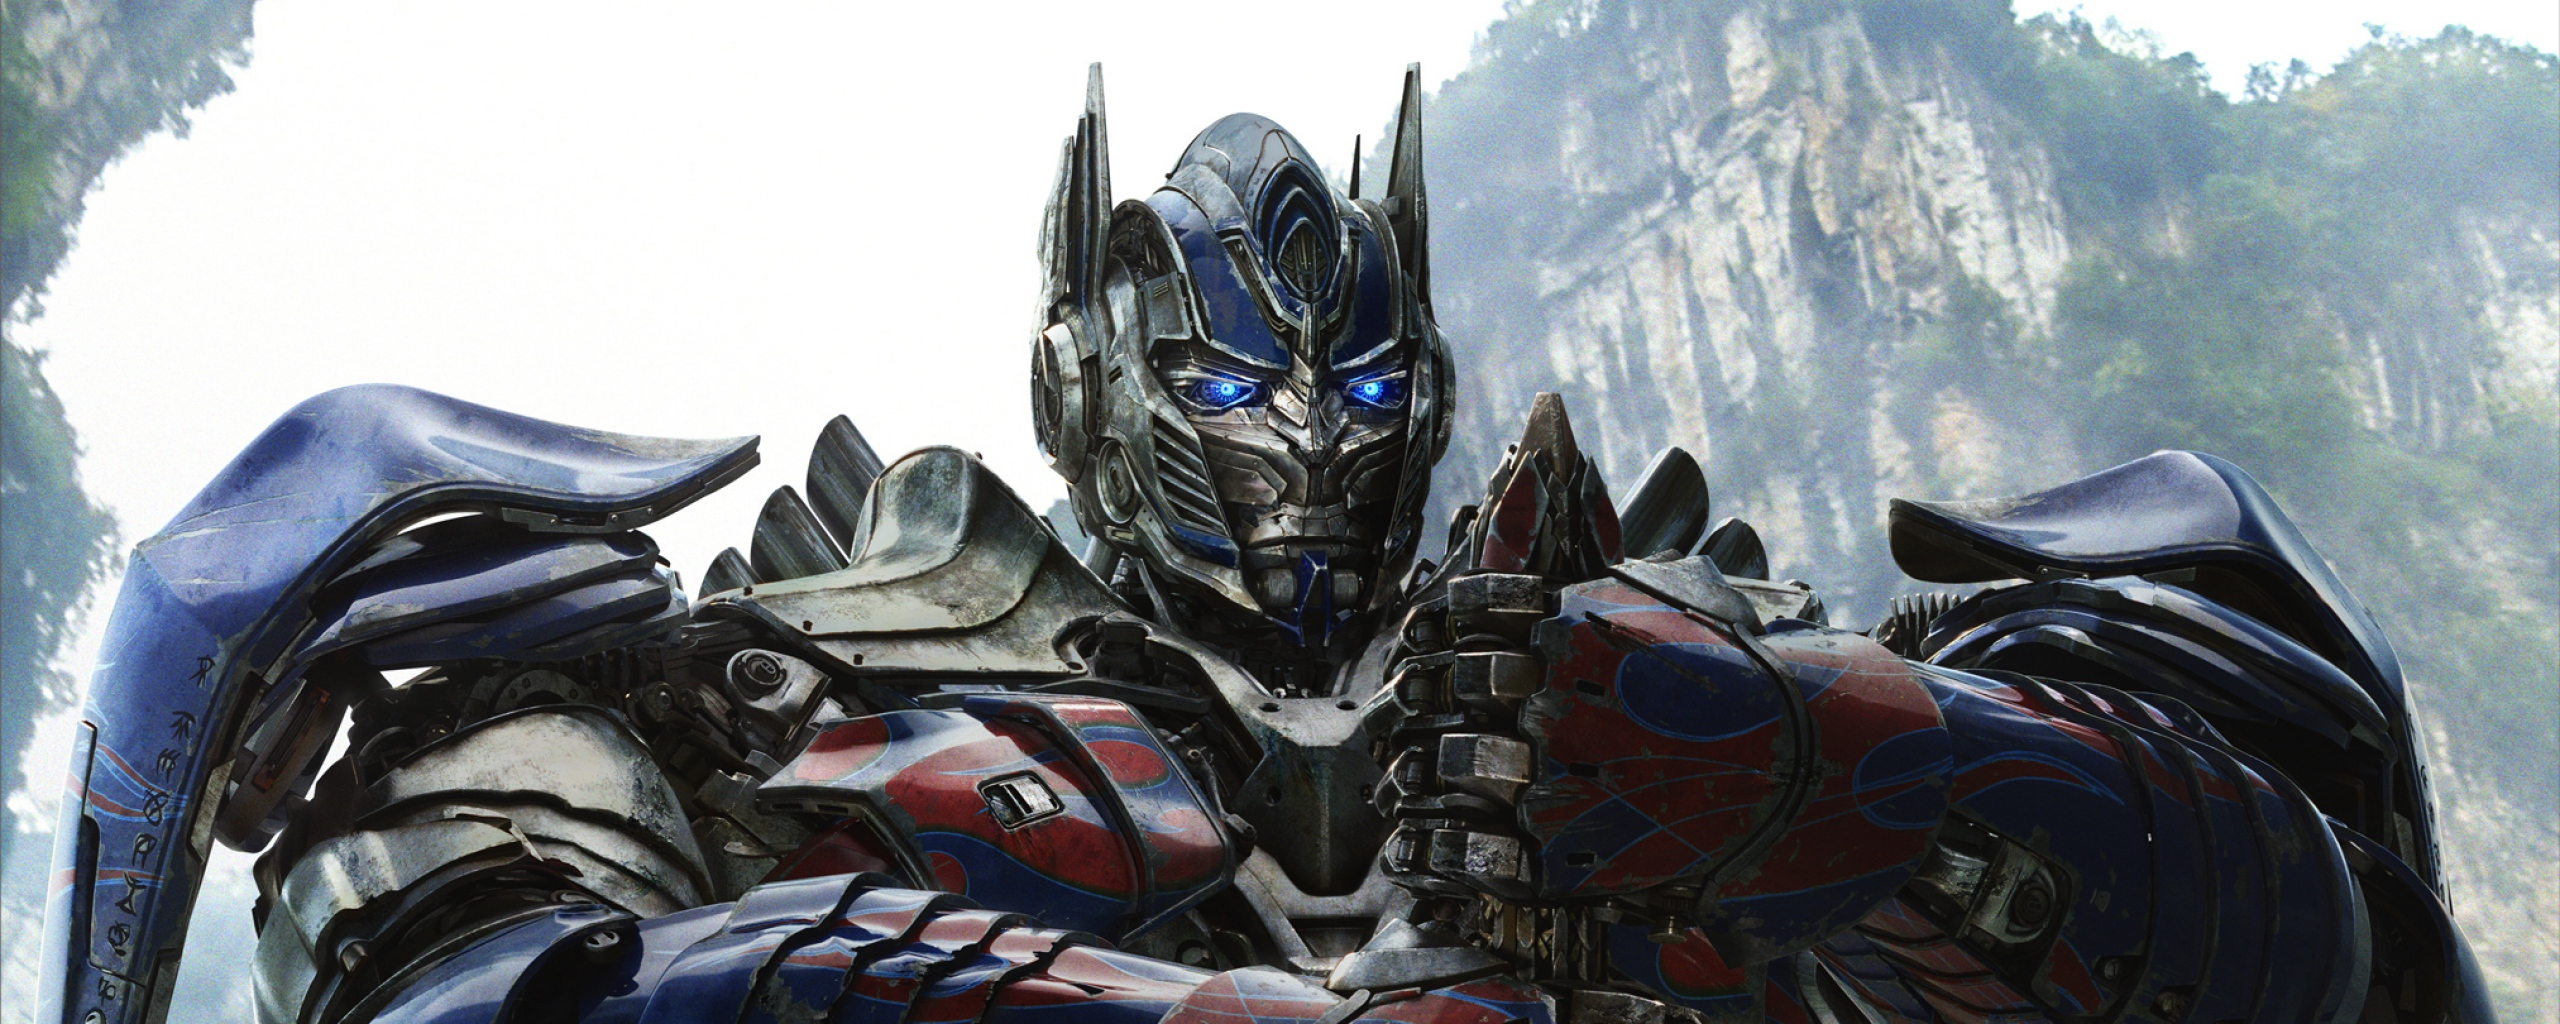 transformers_age_of_extinction_autobot_optimus_prime_optimus_prime_head_iron_95859_2560x1024